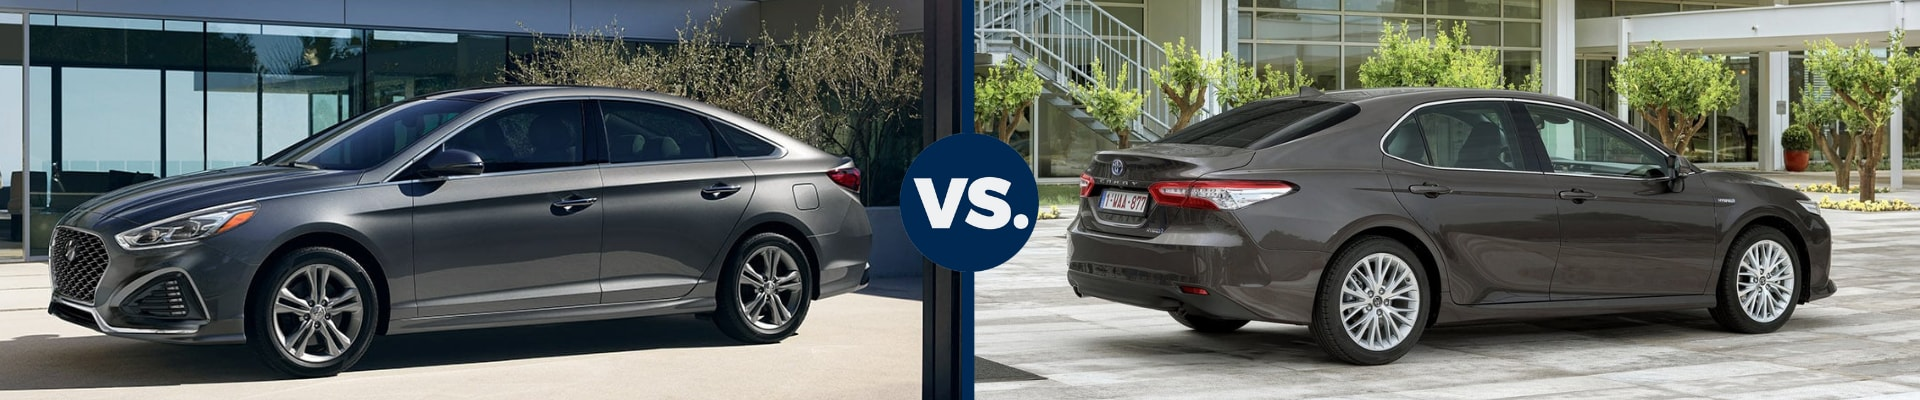 Exterior comparison of the 2019 Hyundai Sonata vs 2019 Toyota Camry sitting back to back